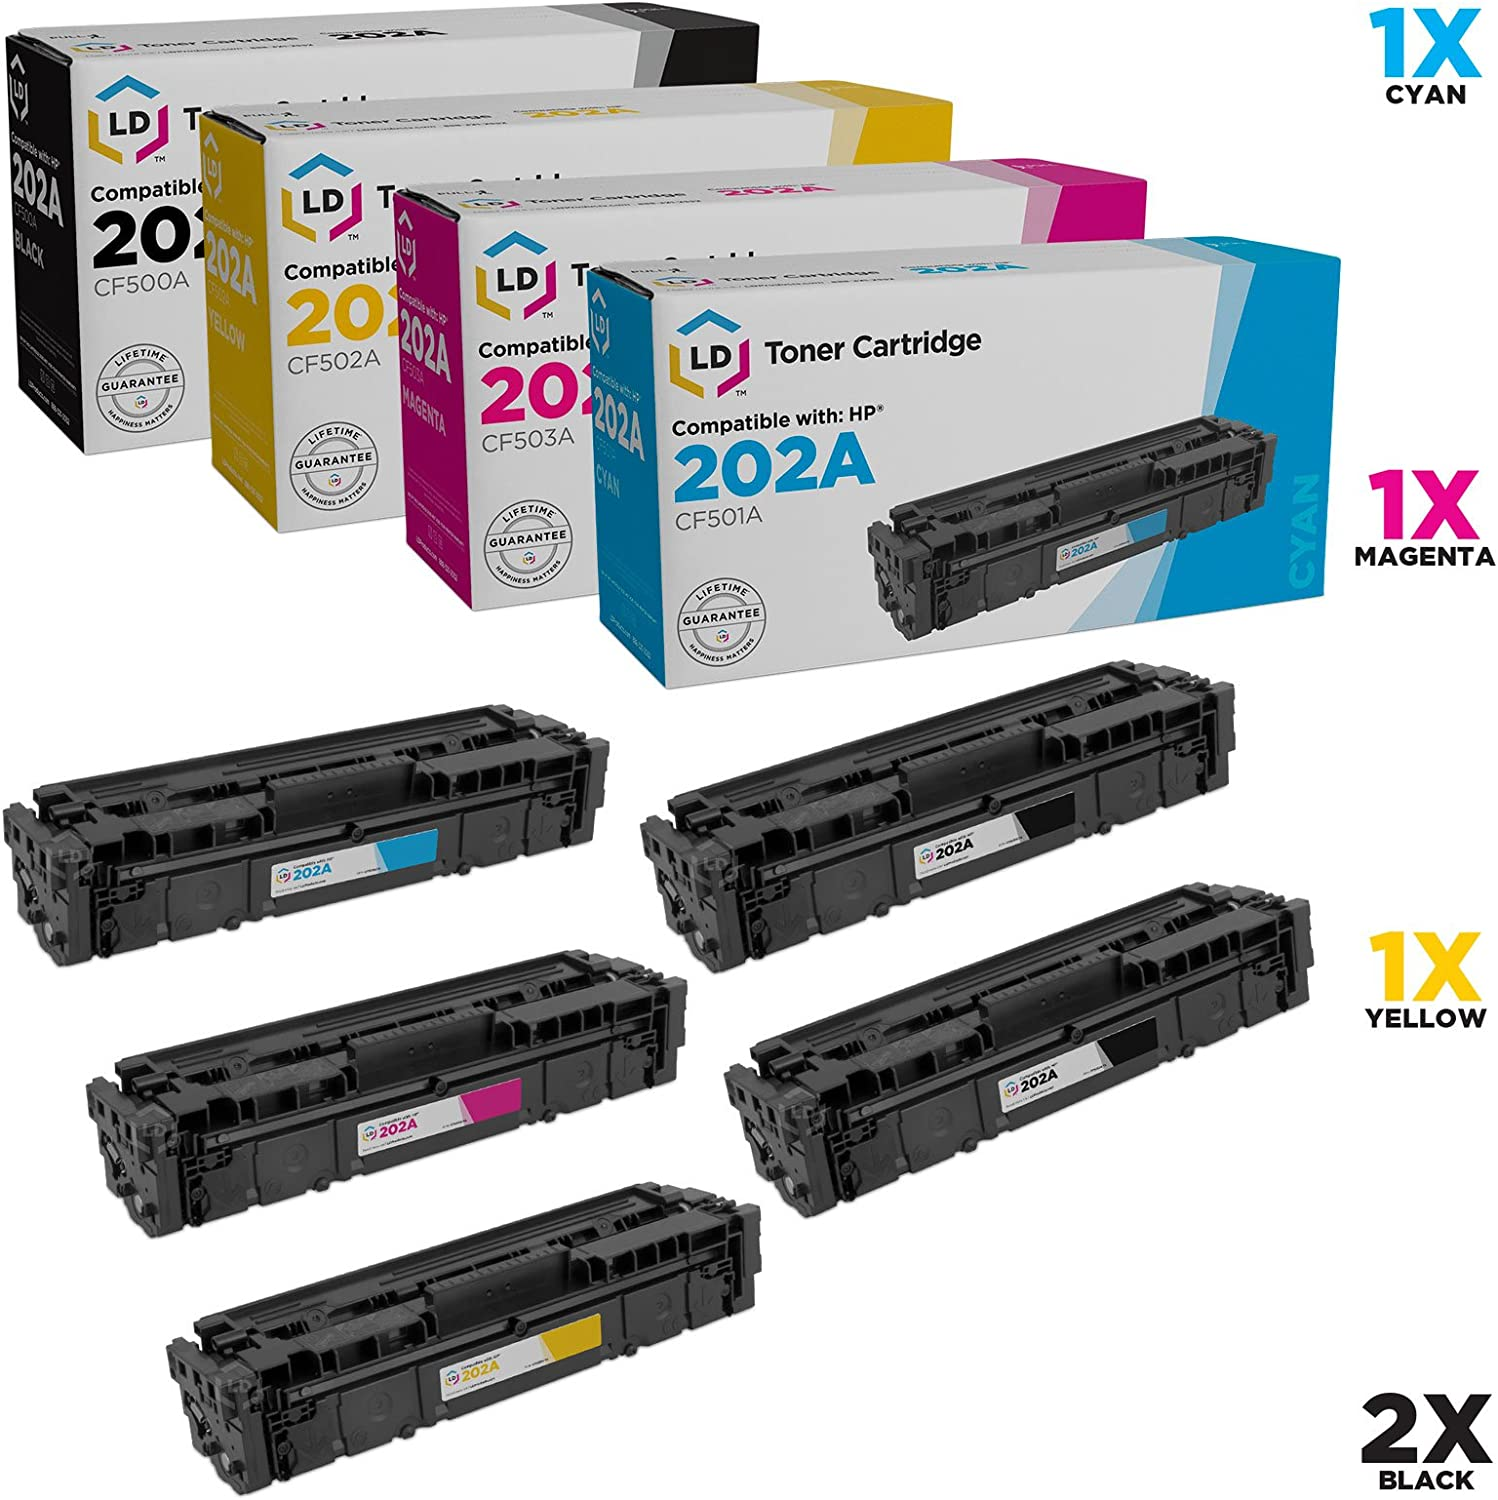 LD Compatible Toner Cartridge Replacement for HP 202A (2 Black, 1 Cyan, 1 Magenta, 1 Yellow, 5-Pack)